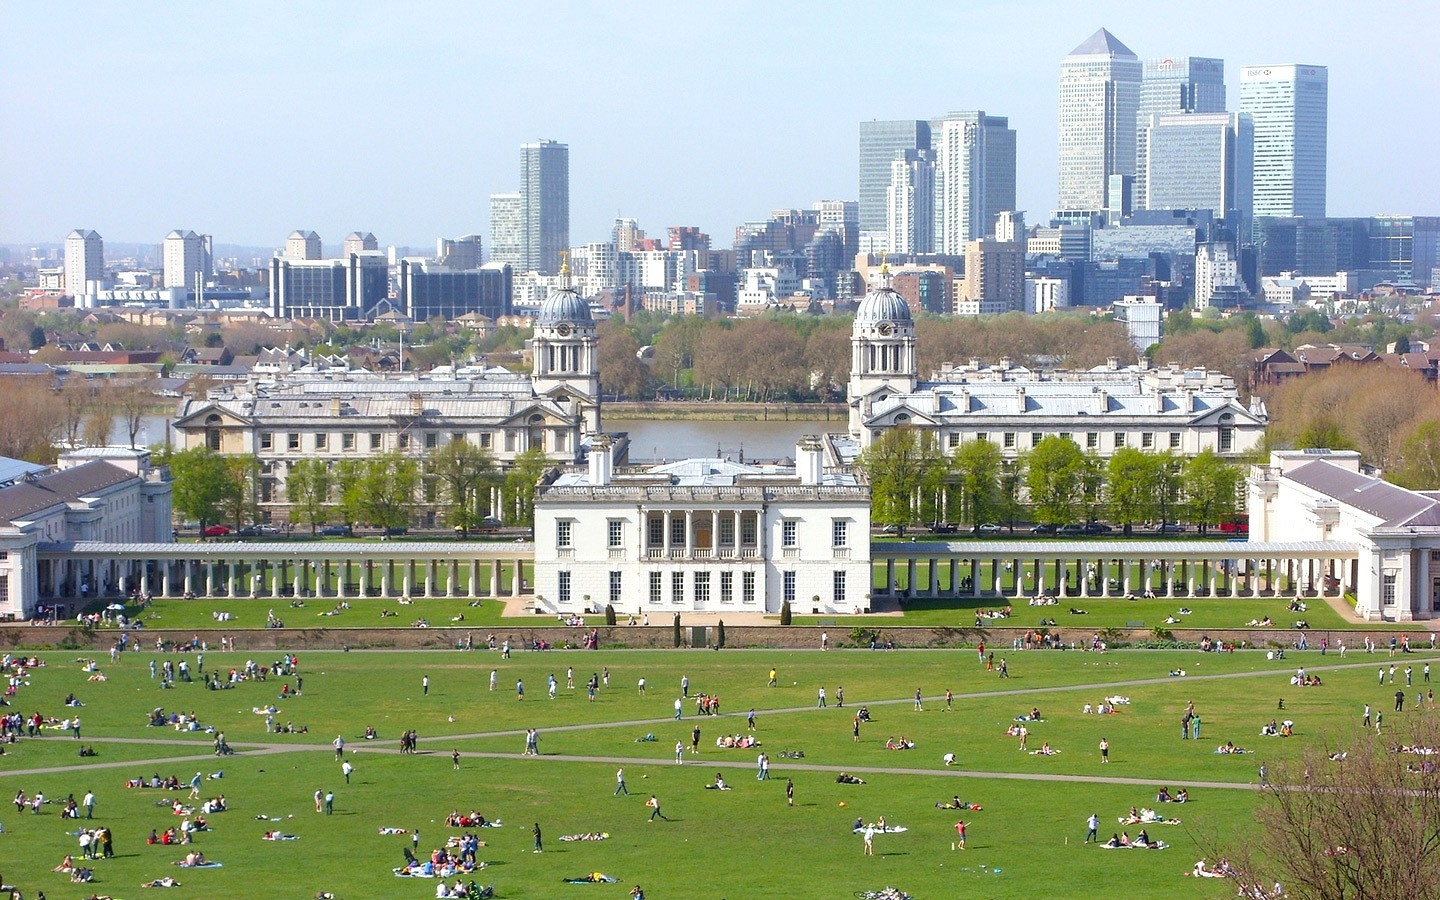 Views of the city from London's Greenwich Park